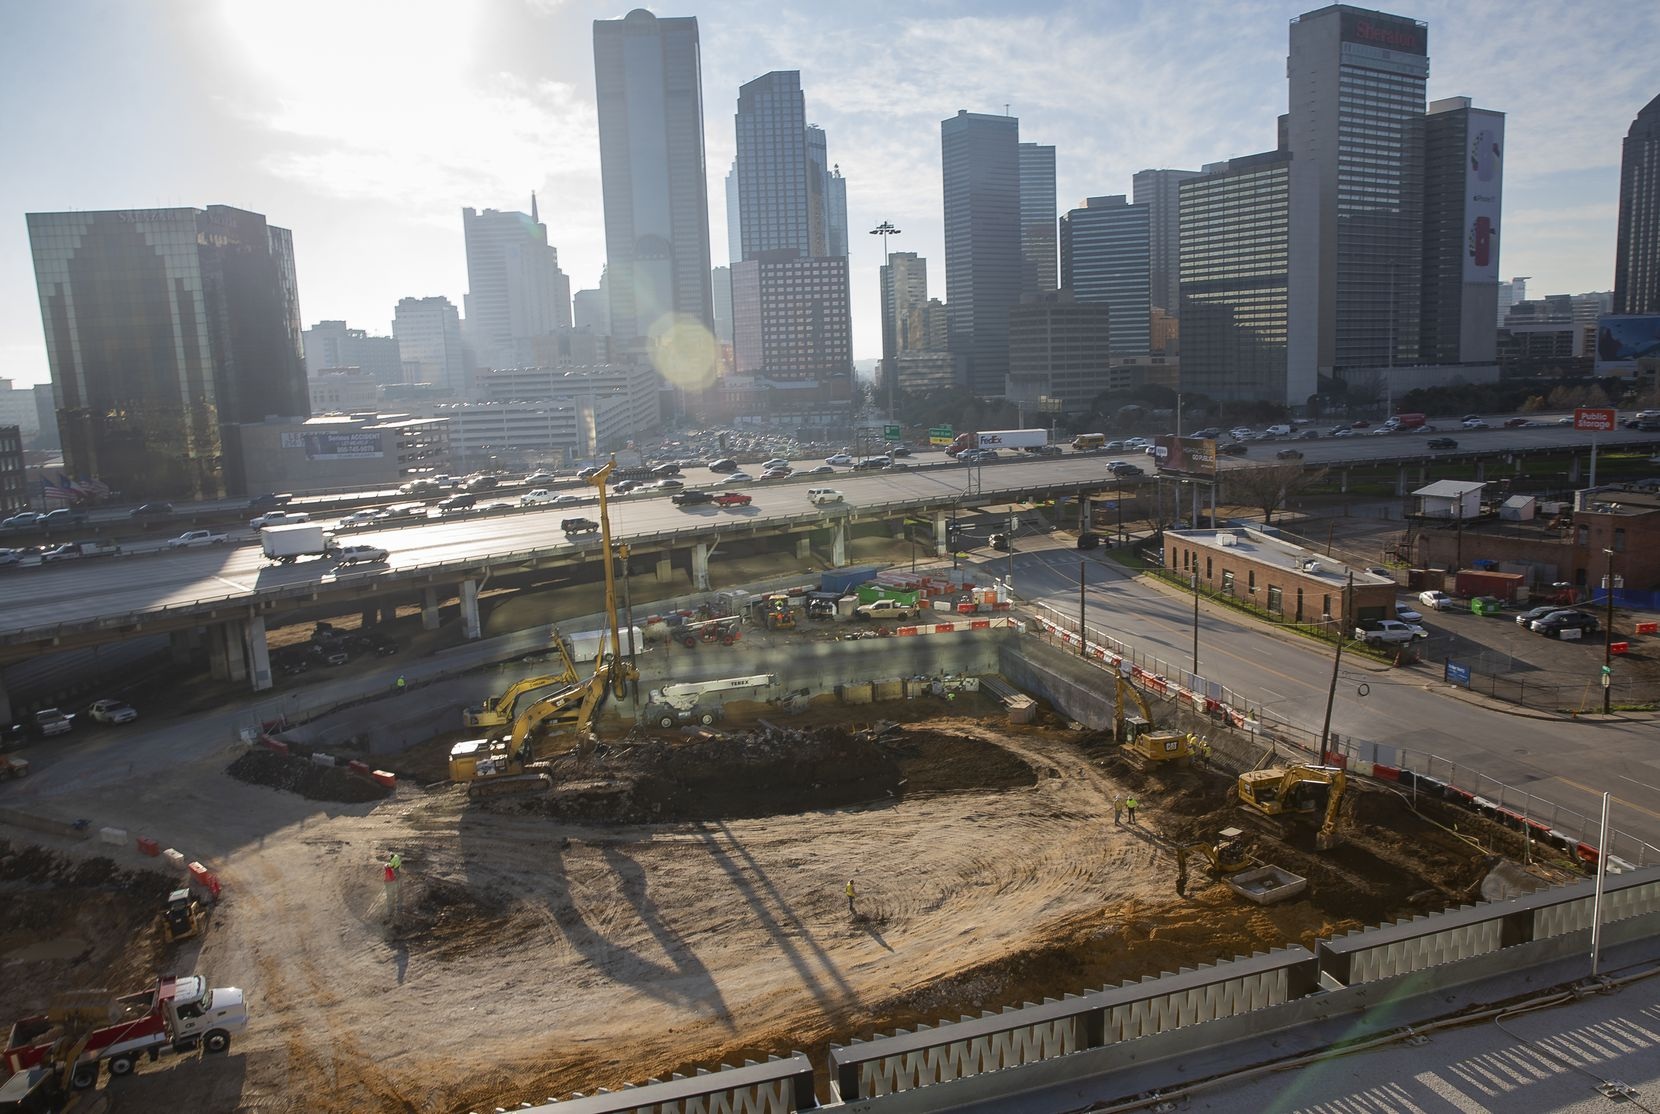 Construction on Uber's new corporate office could be seen from the company's current Deep Ellum office on Jan. 27, 2020, in Dallas.